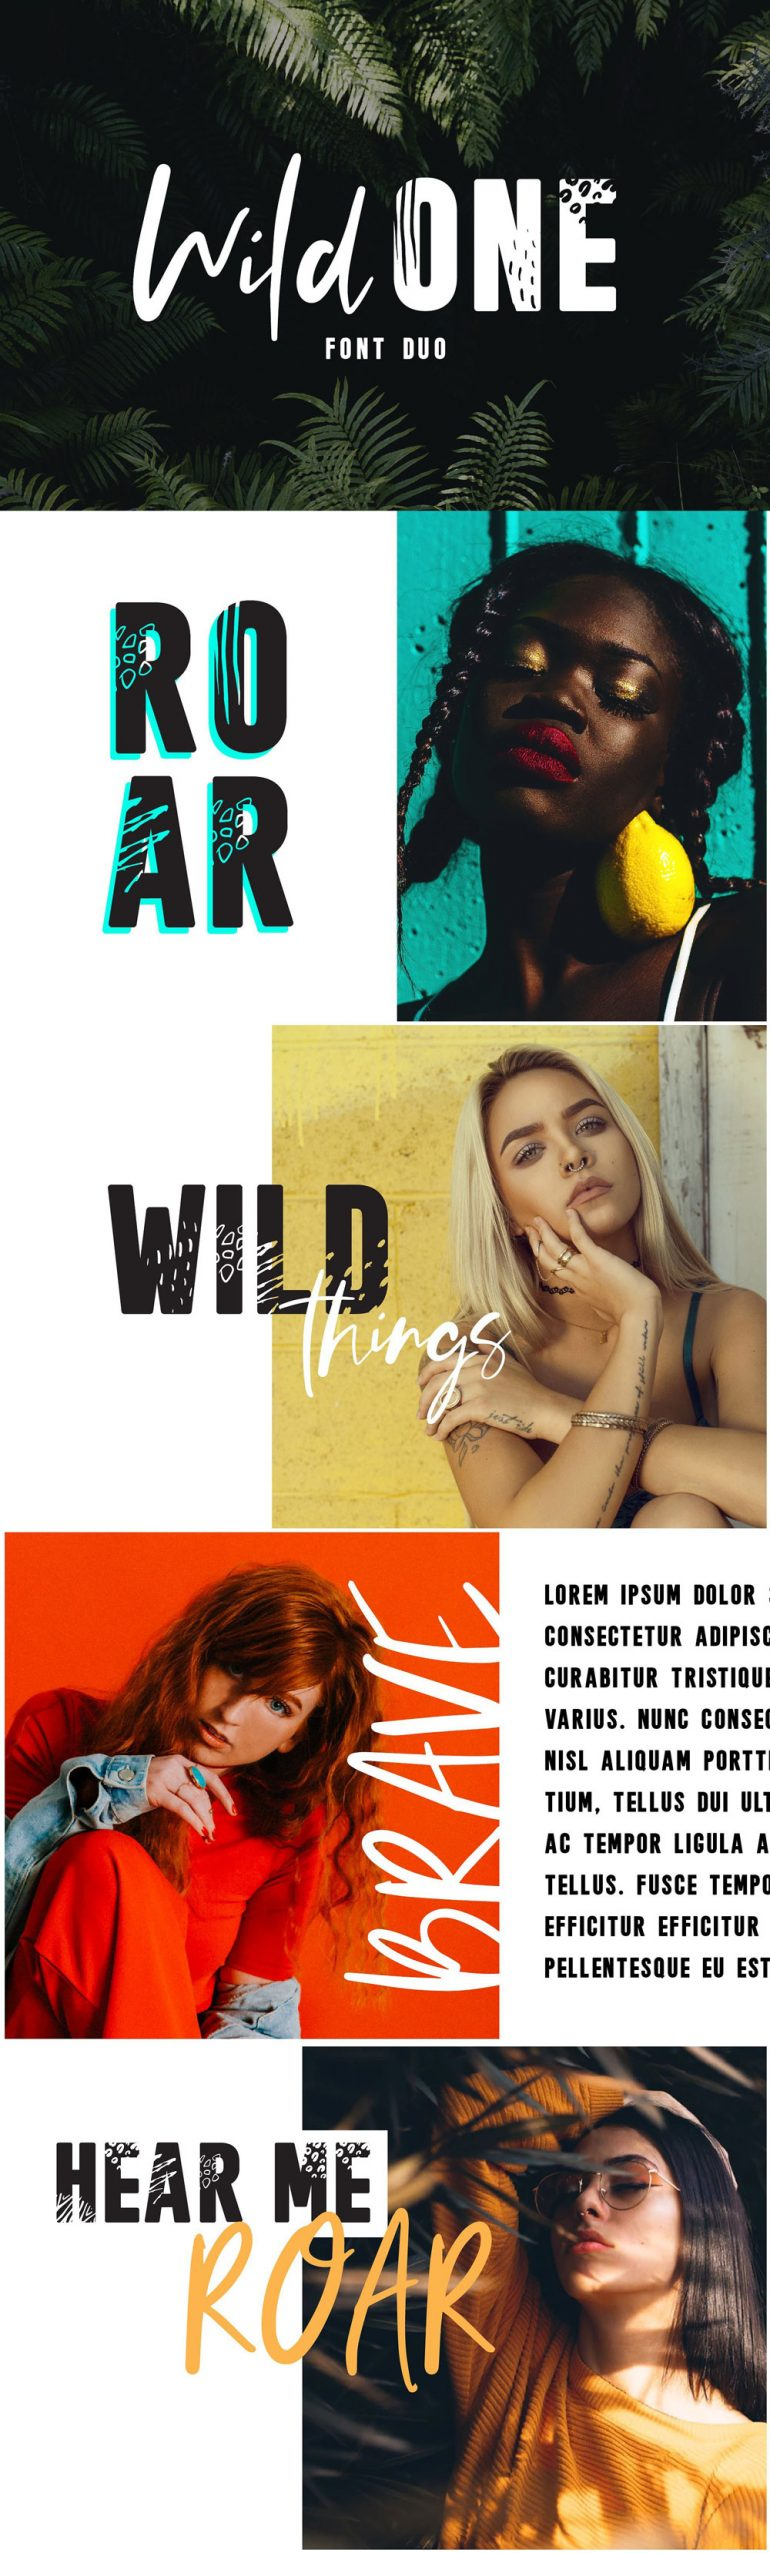 Wild One – A Wild Font Duo